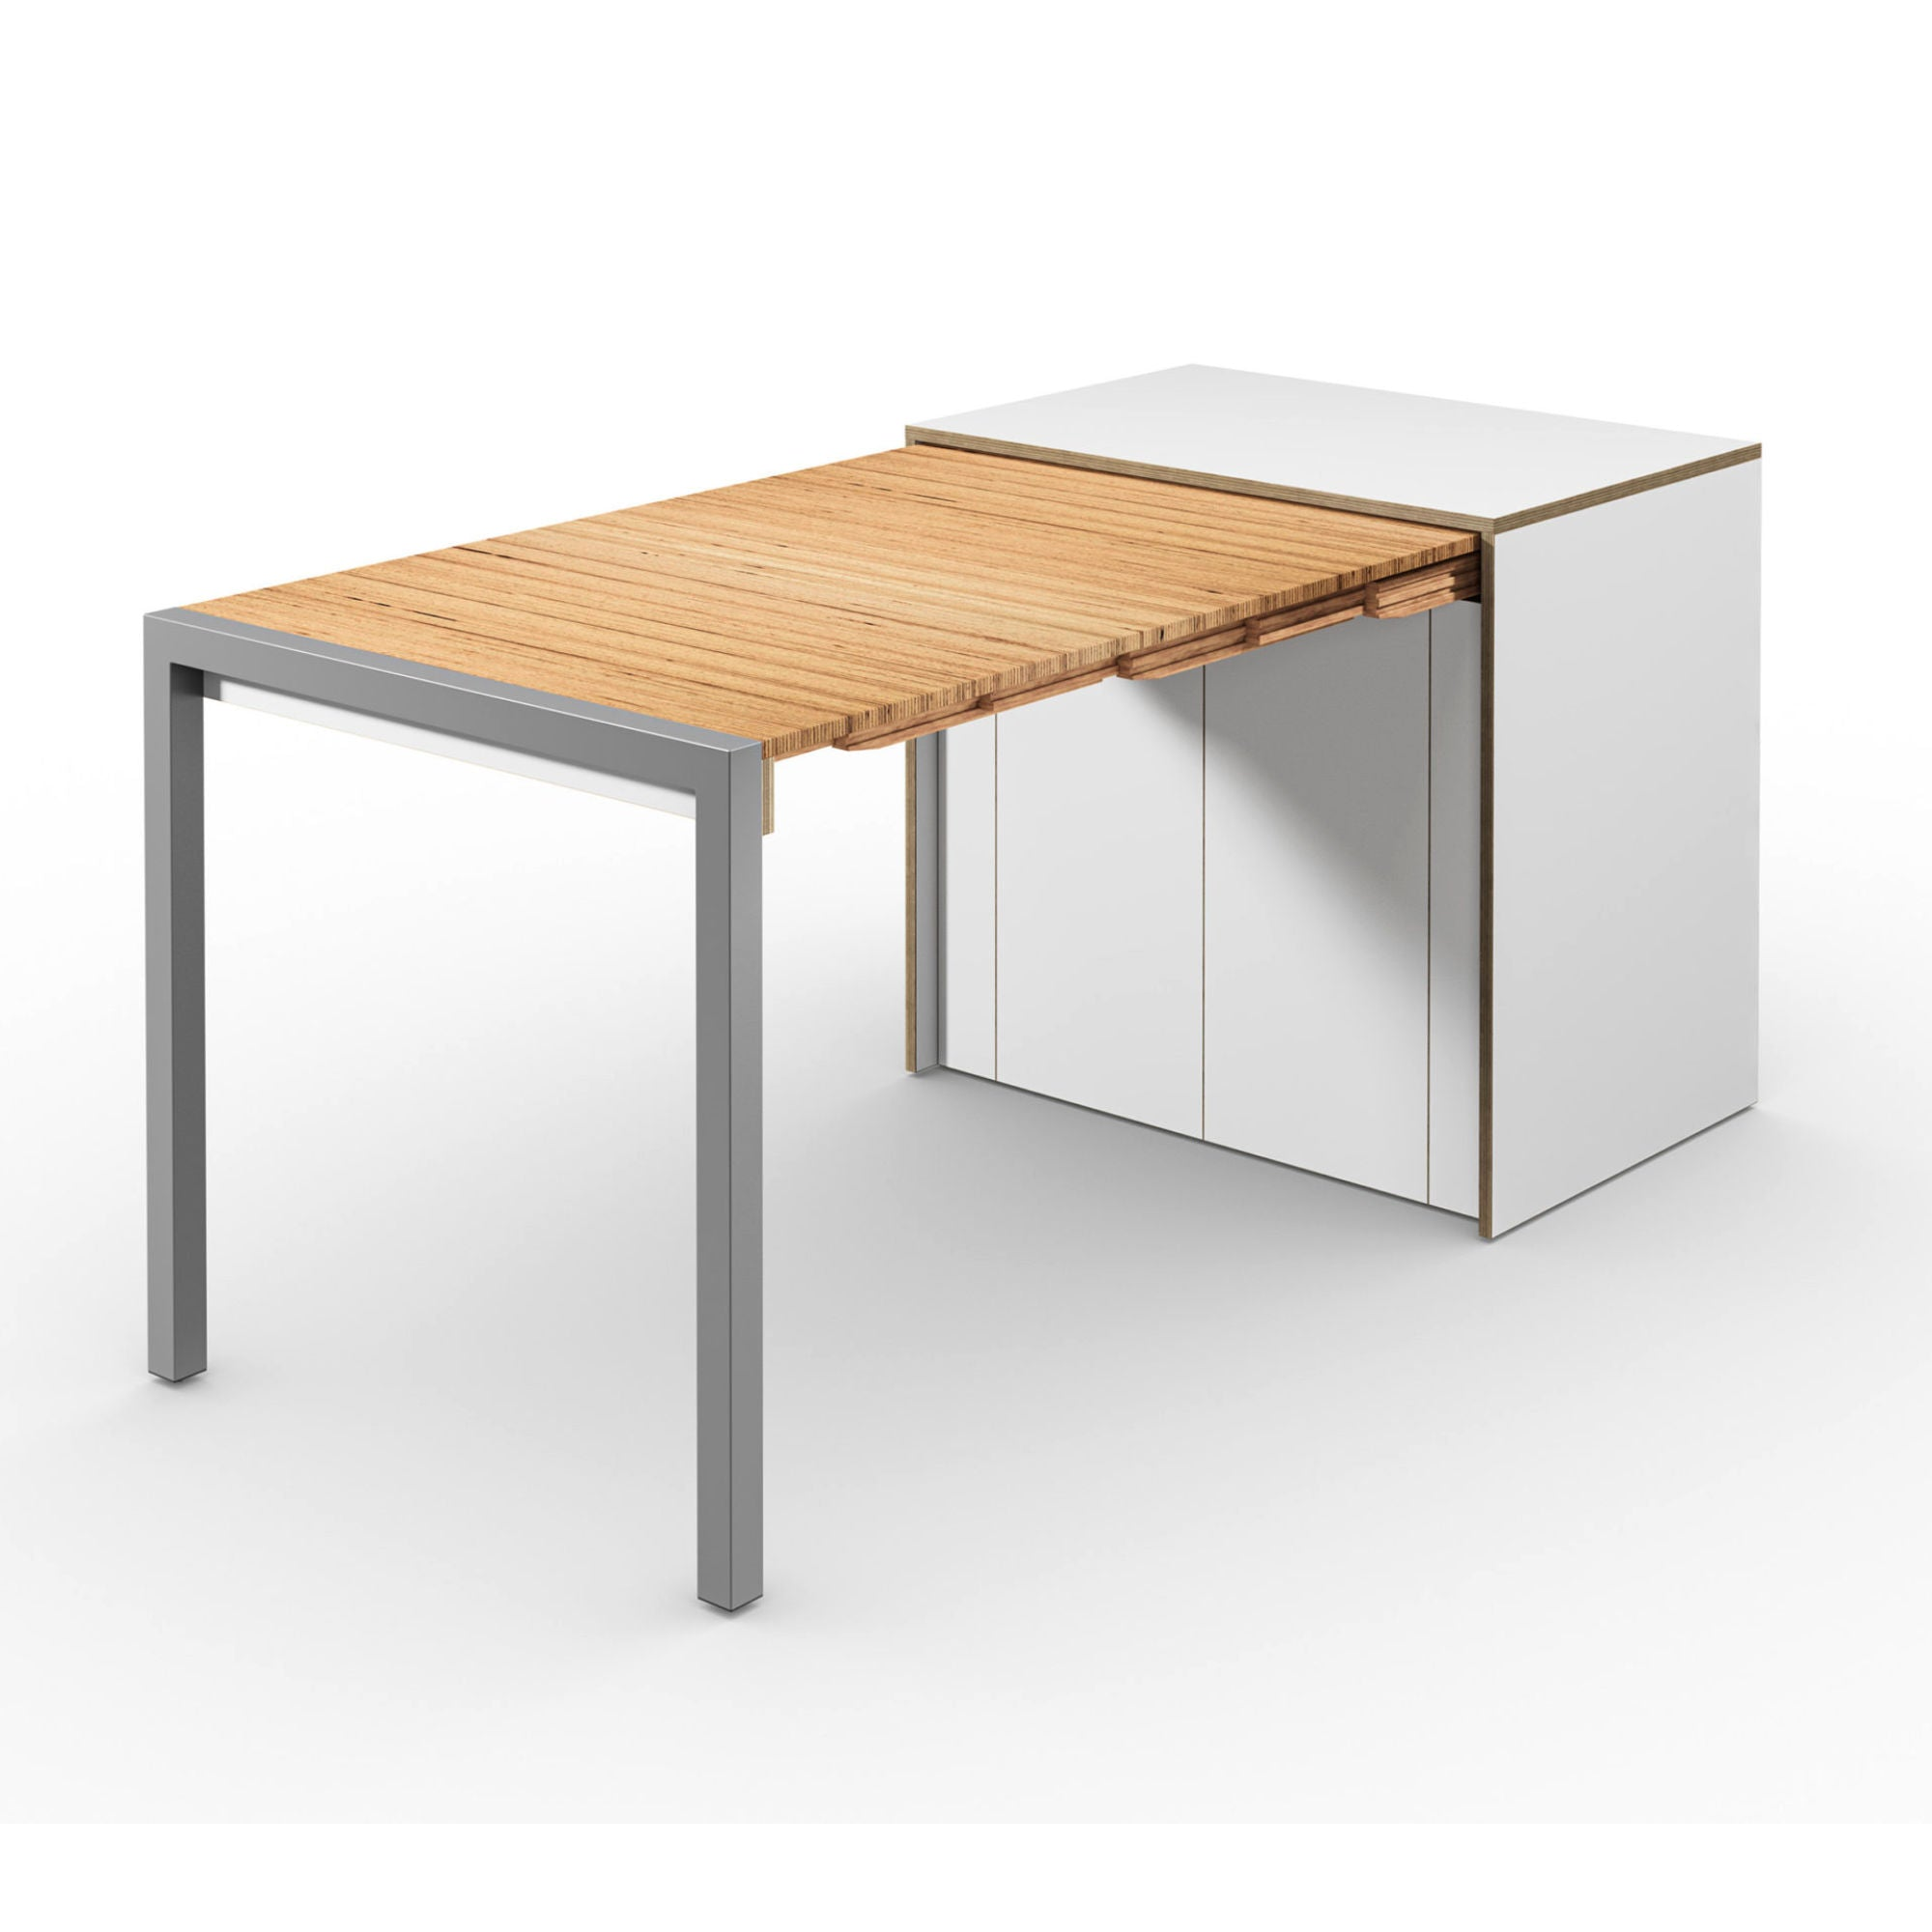 Alwin's Room&Board Extendable Table Sideboard , White/Beech Laminated Veneer